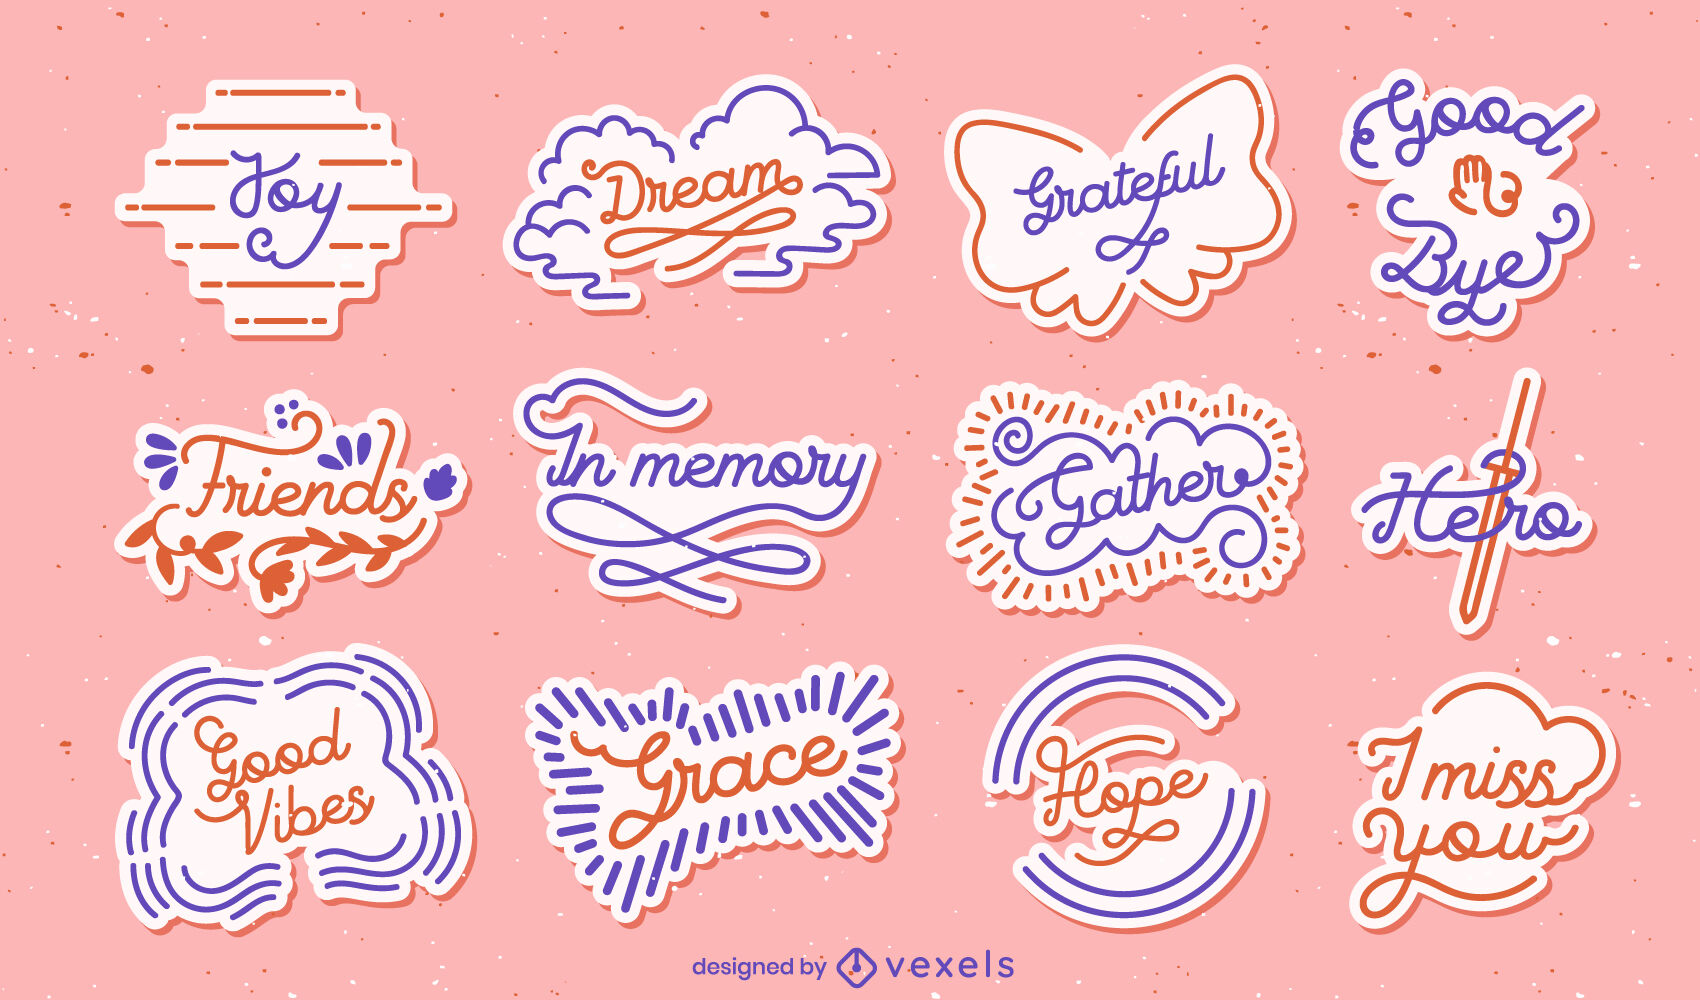 Good vibes quotes lettering stickers